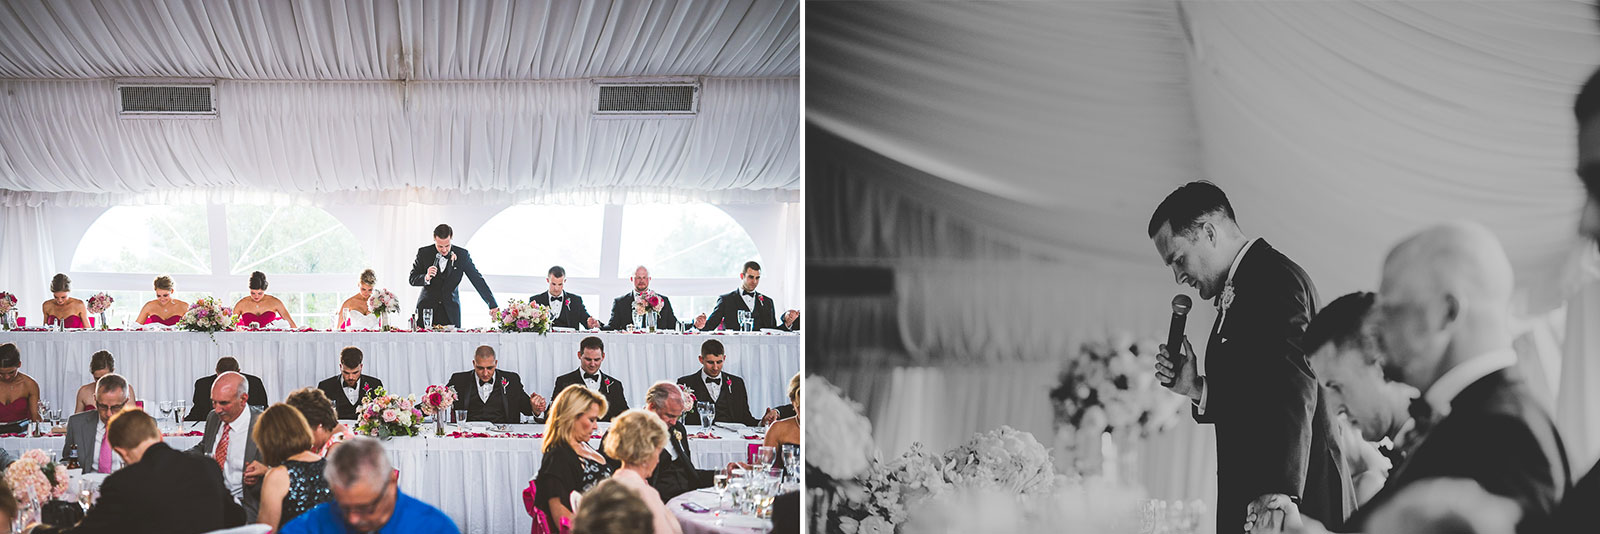 68 groom blessing1 - Kristina + Dave // Wedding Photographer in Chicago